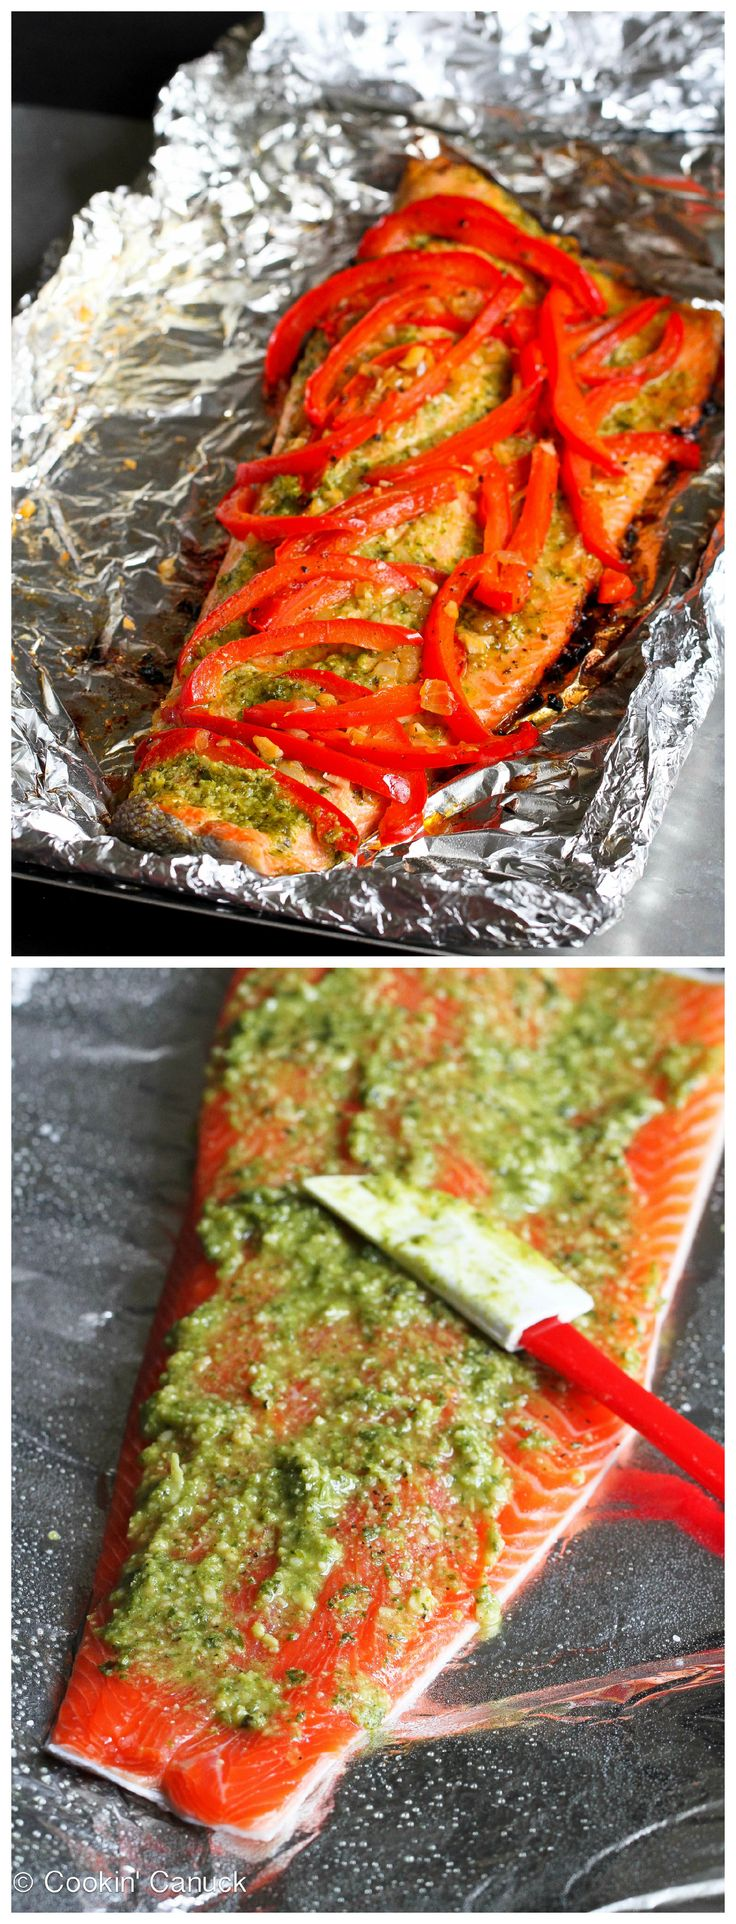 Easy Grilled Pesto Salmon in Foil Recipe...254 calories and 6 Weight Watchers PP | cookincanuck.com #healthy